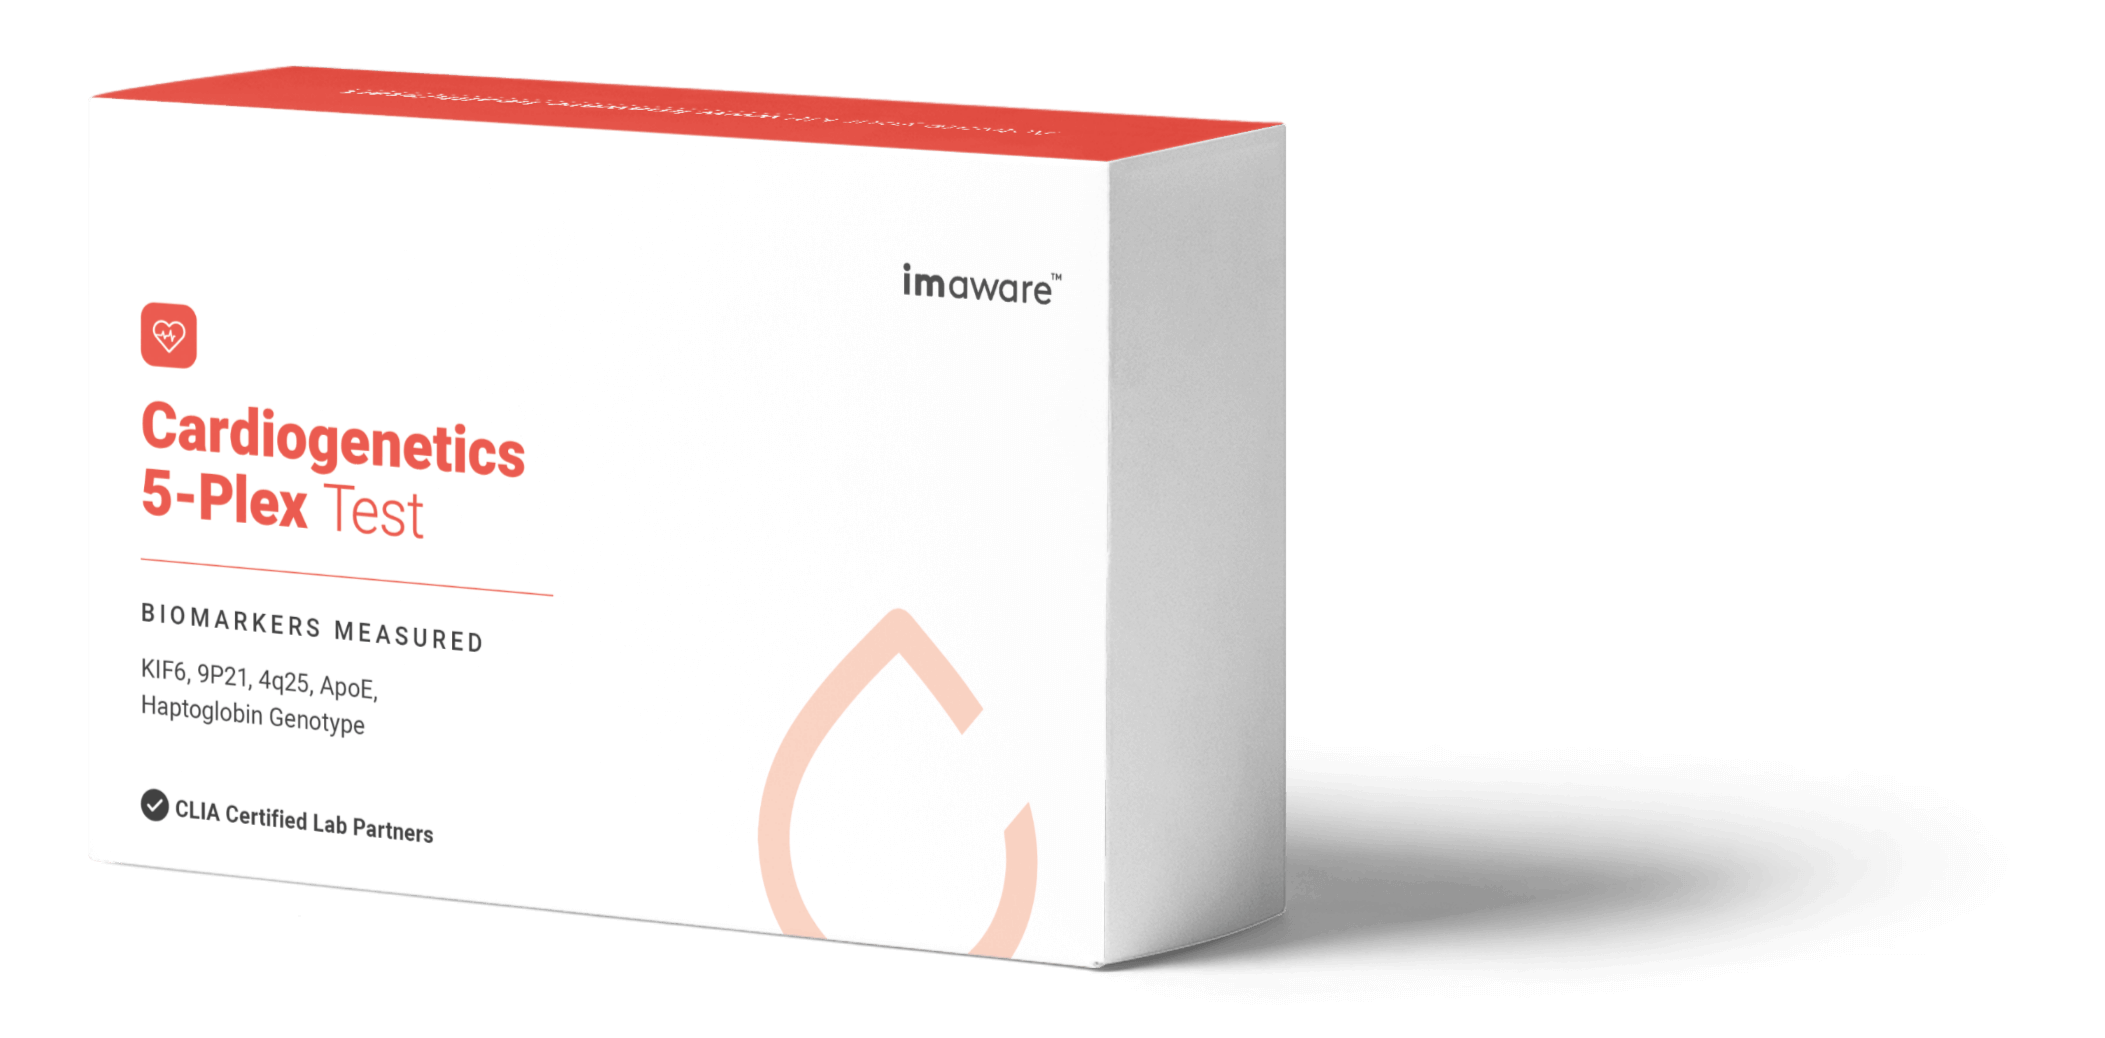 A product box